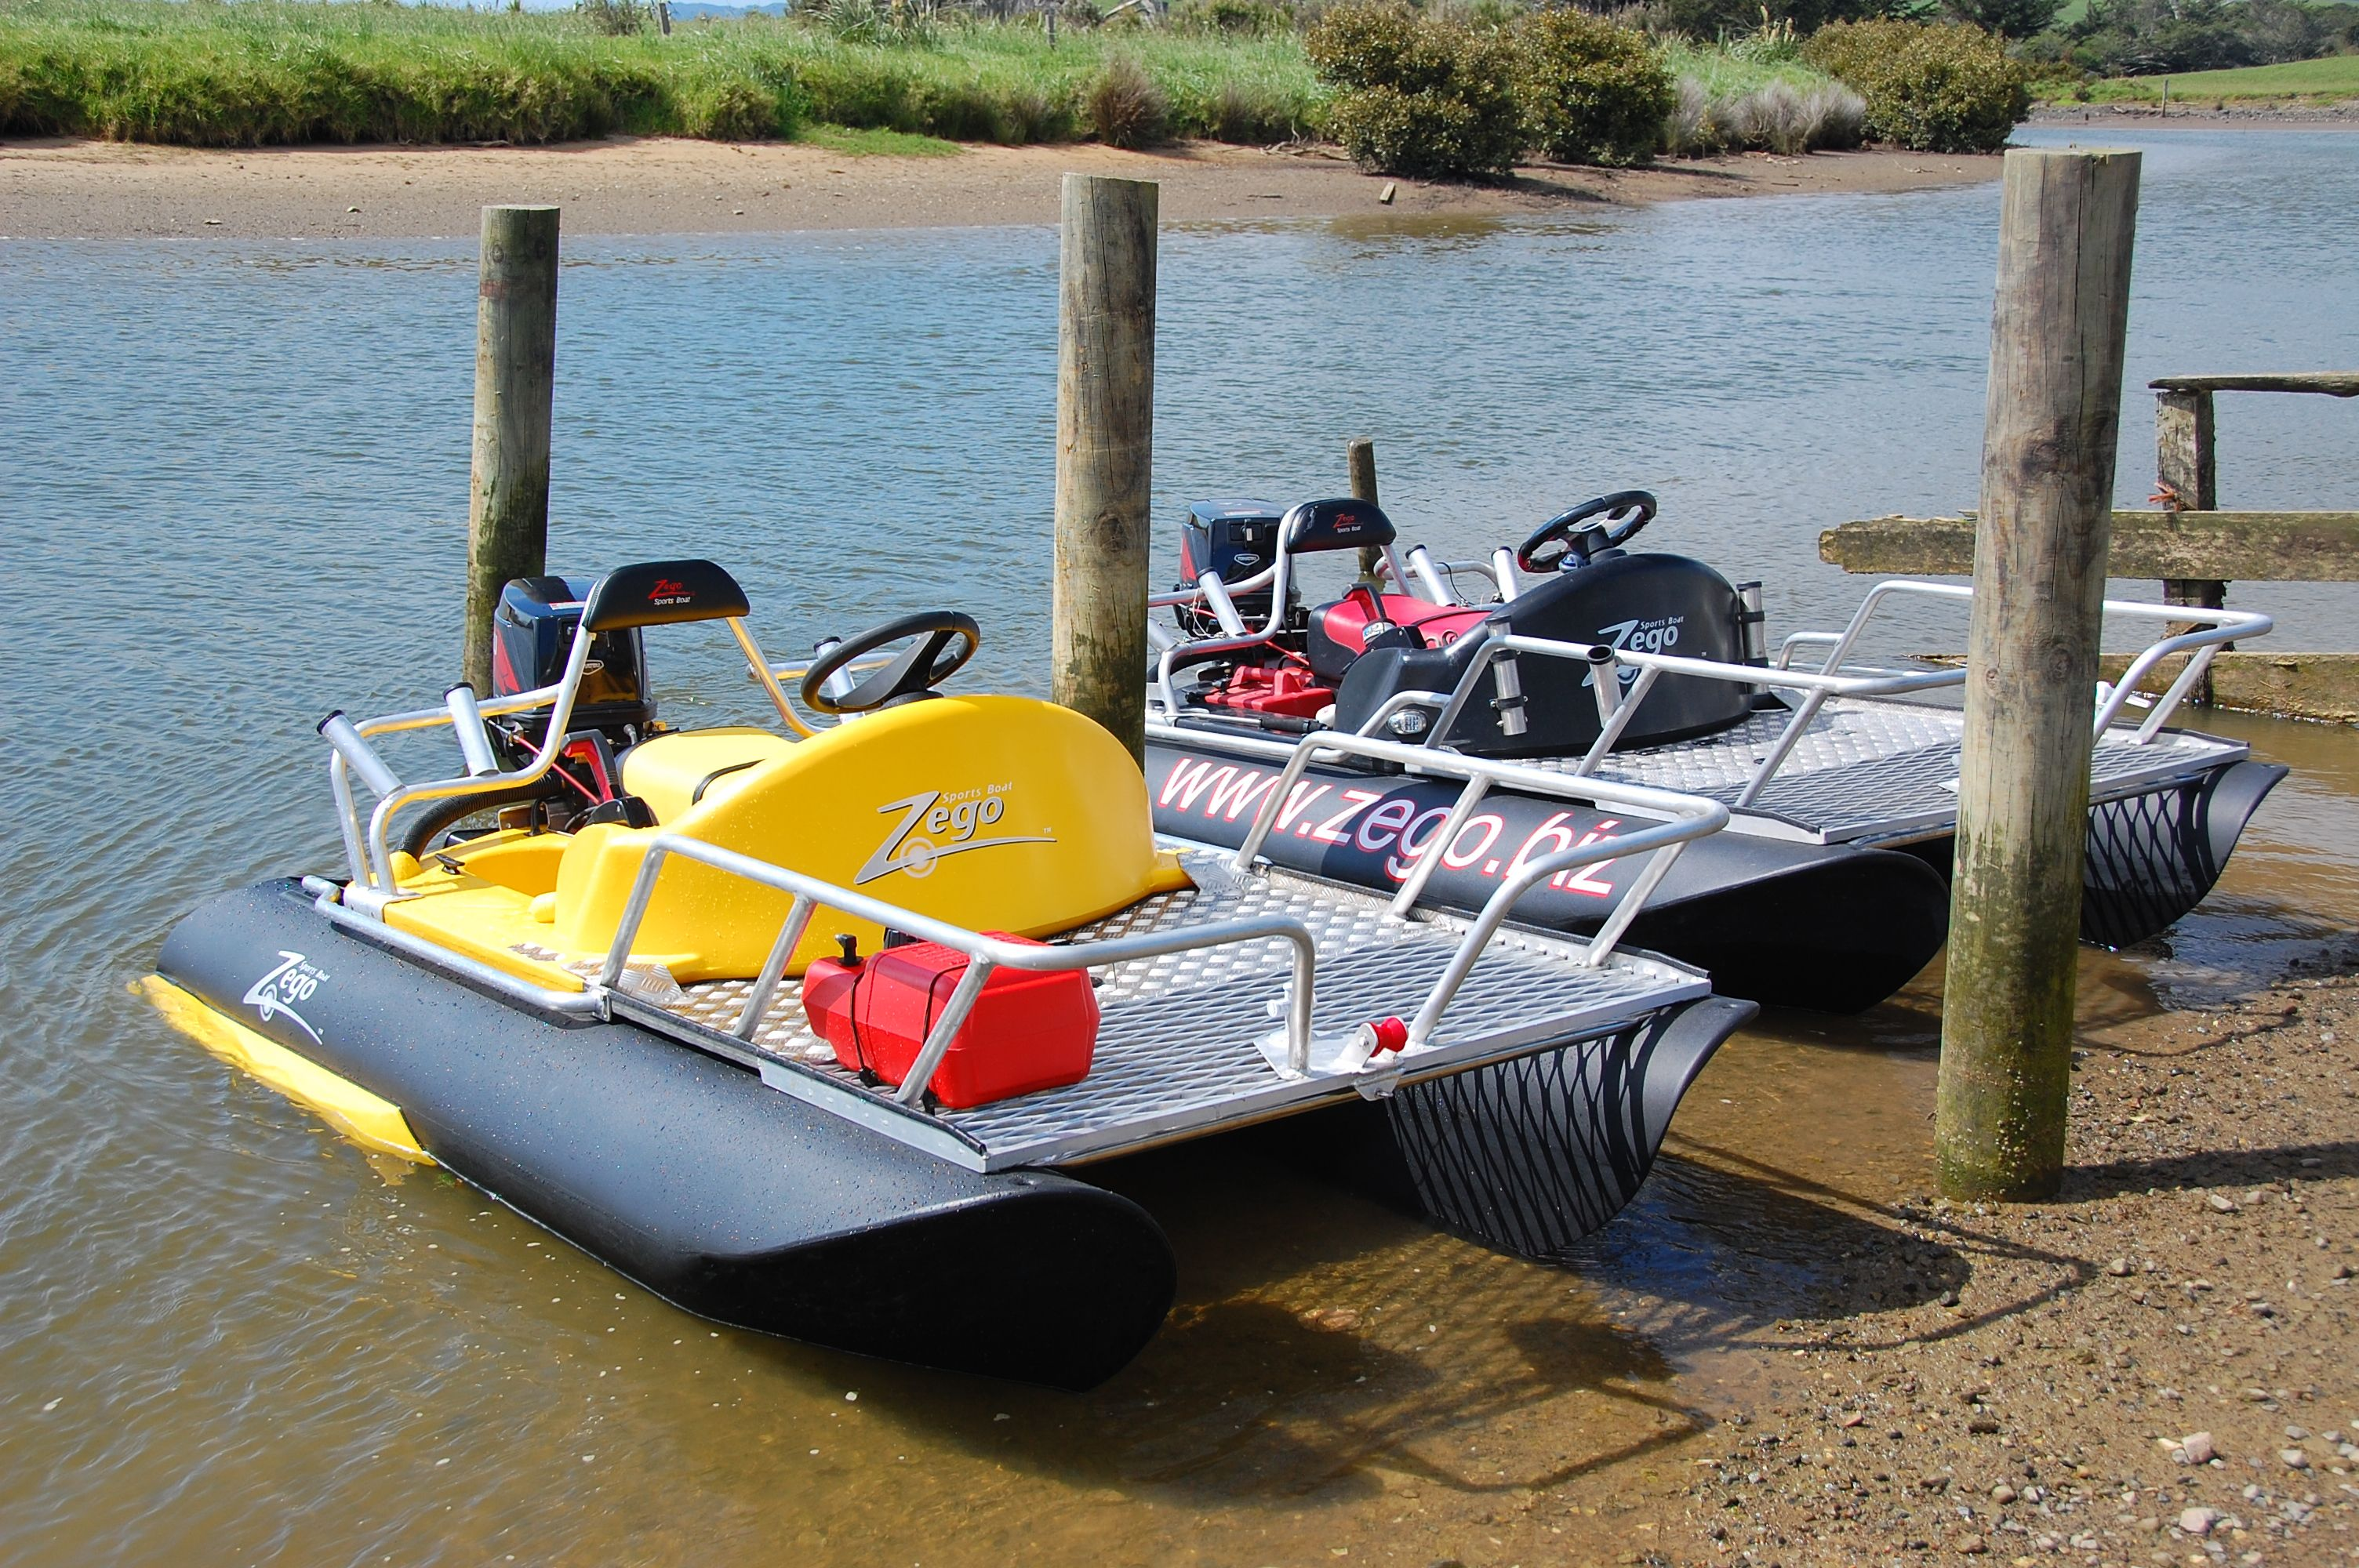 Zego boats boat mods and such pinterest boating for One man fishing boat